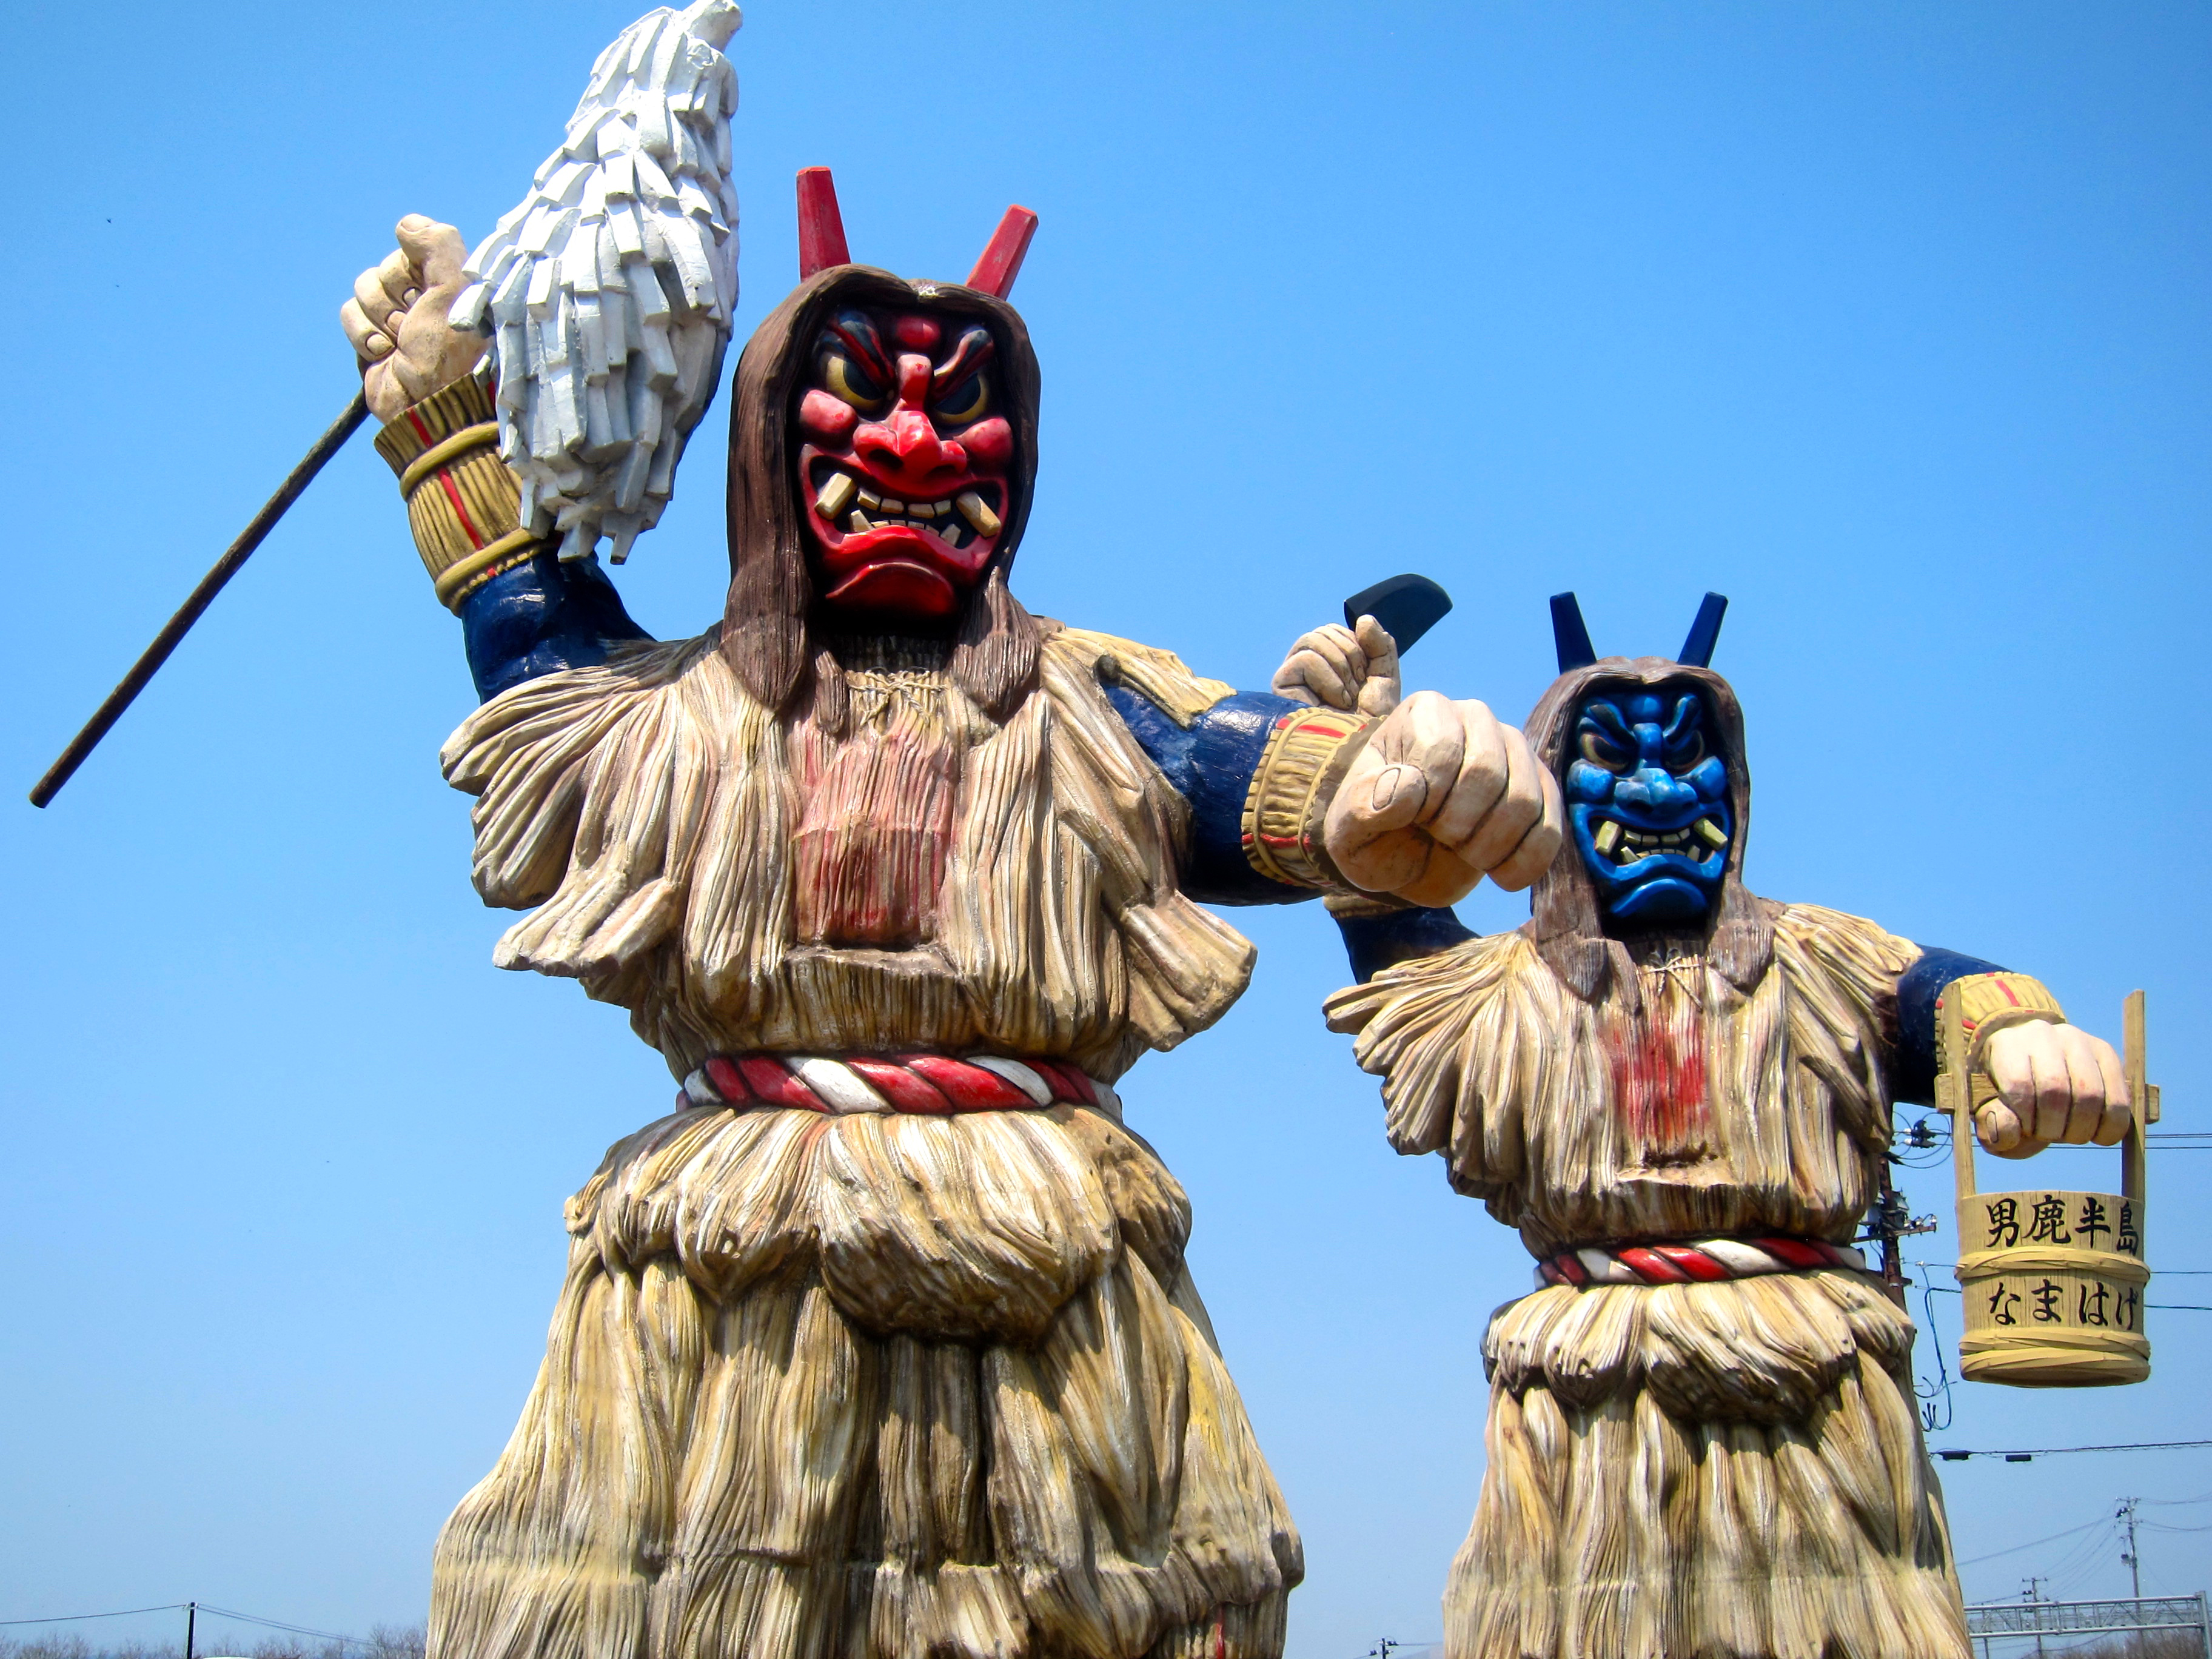 Monumental monsters: The Namahage ogres at the Oga Tourism Center welcome visitors to the Akita prefectural city. | LOUISE GEORGE KITTAKA